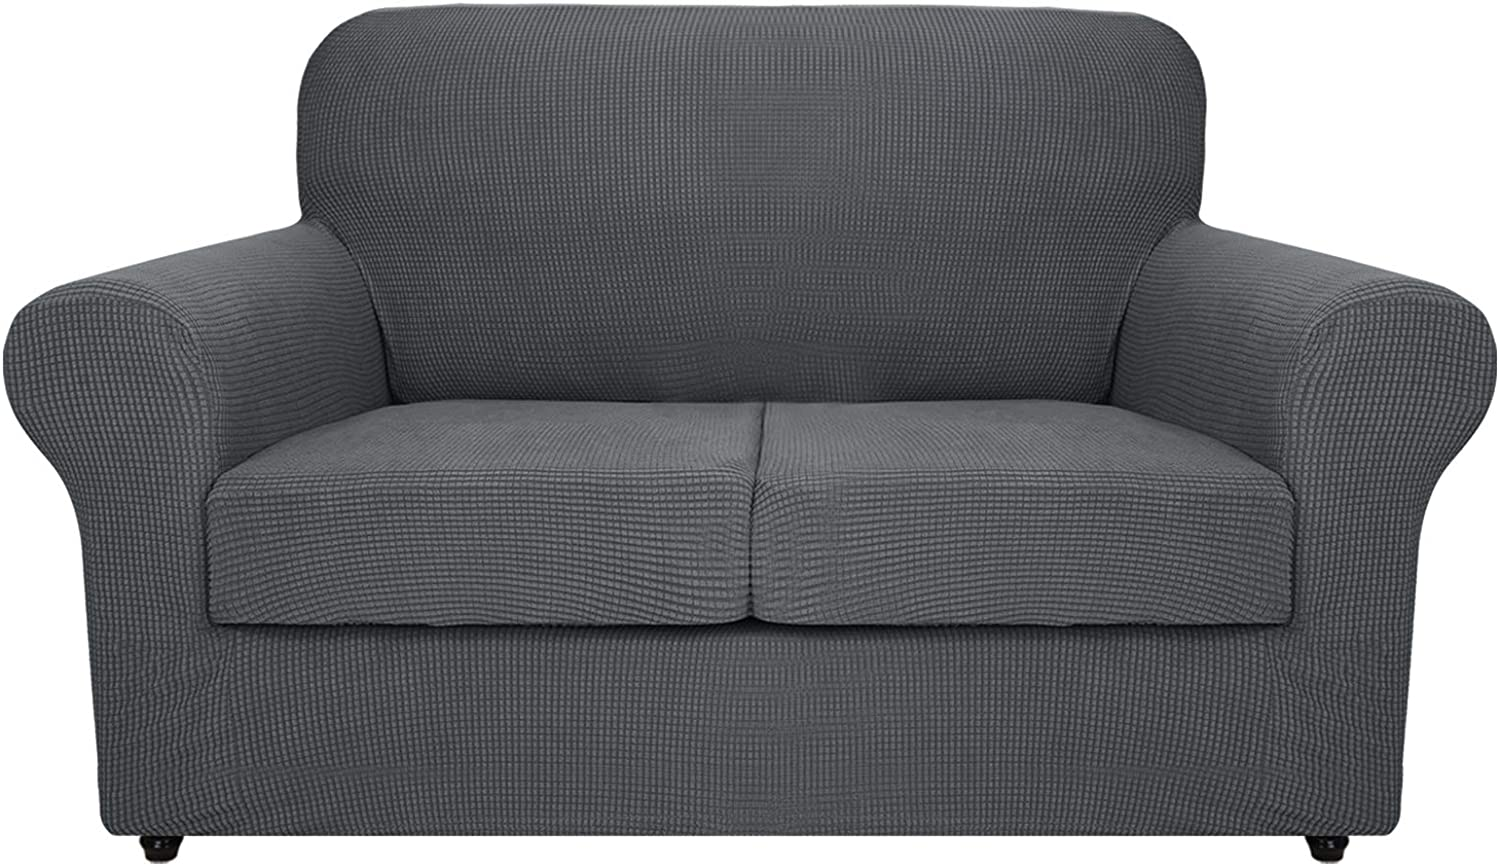 MAXIJIN 3 Piece Couch Covers for 2 Cushion Couch Super Stretch Loveseat Slipcover Dogs Pet Proof Fitted Furniture Protector Spandex Non Slip Sofa Love Seat Cover Washable (Loveseat, Gray)